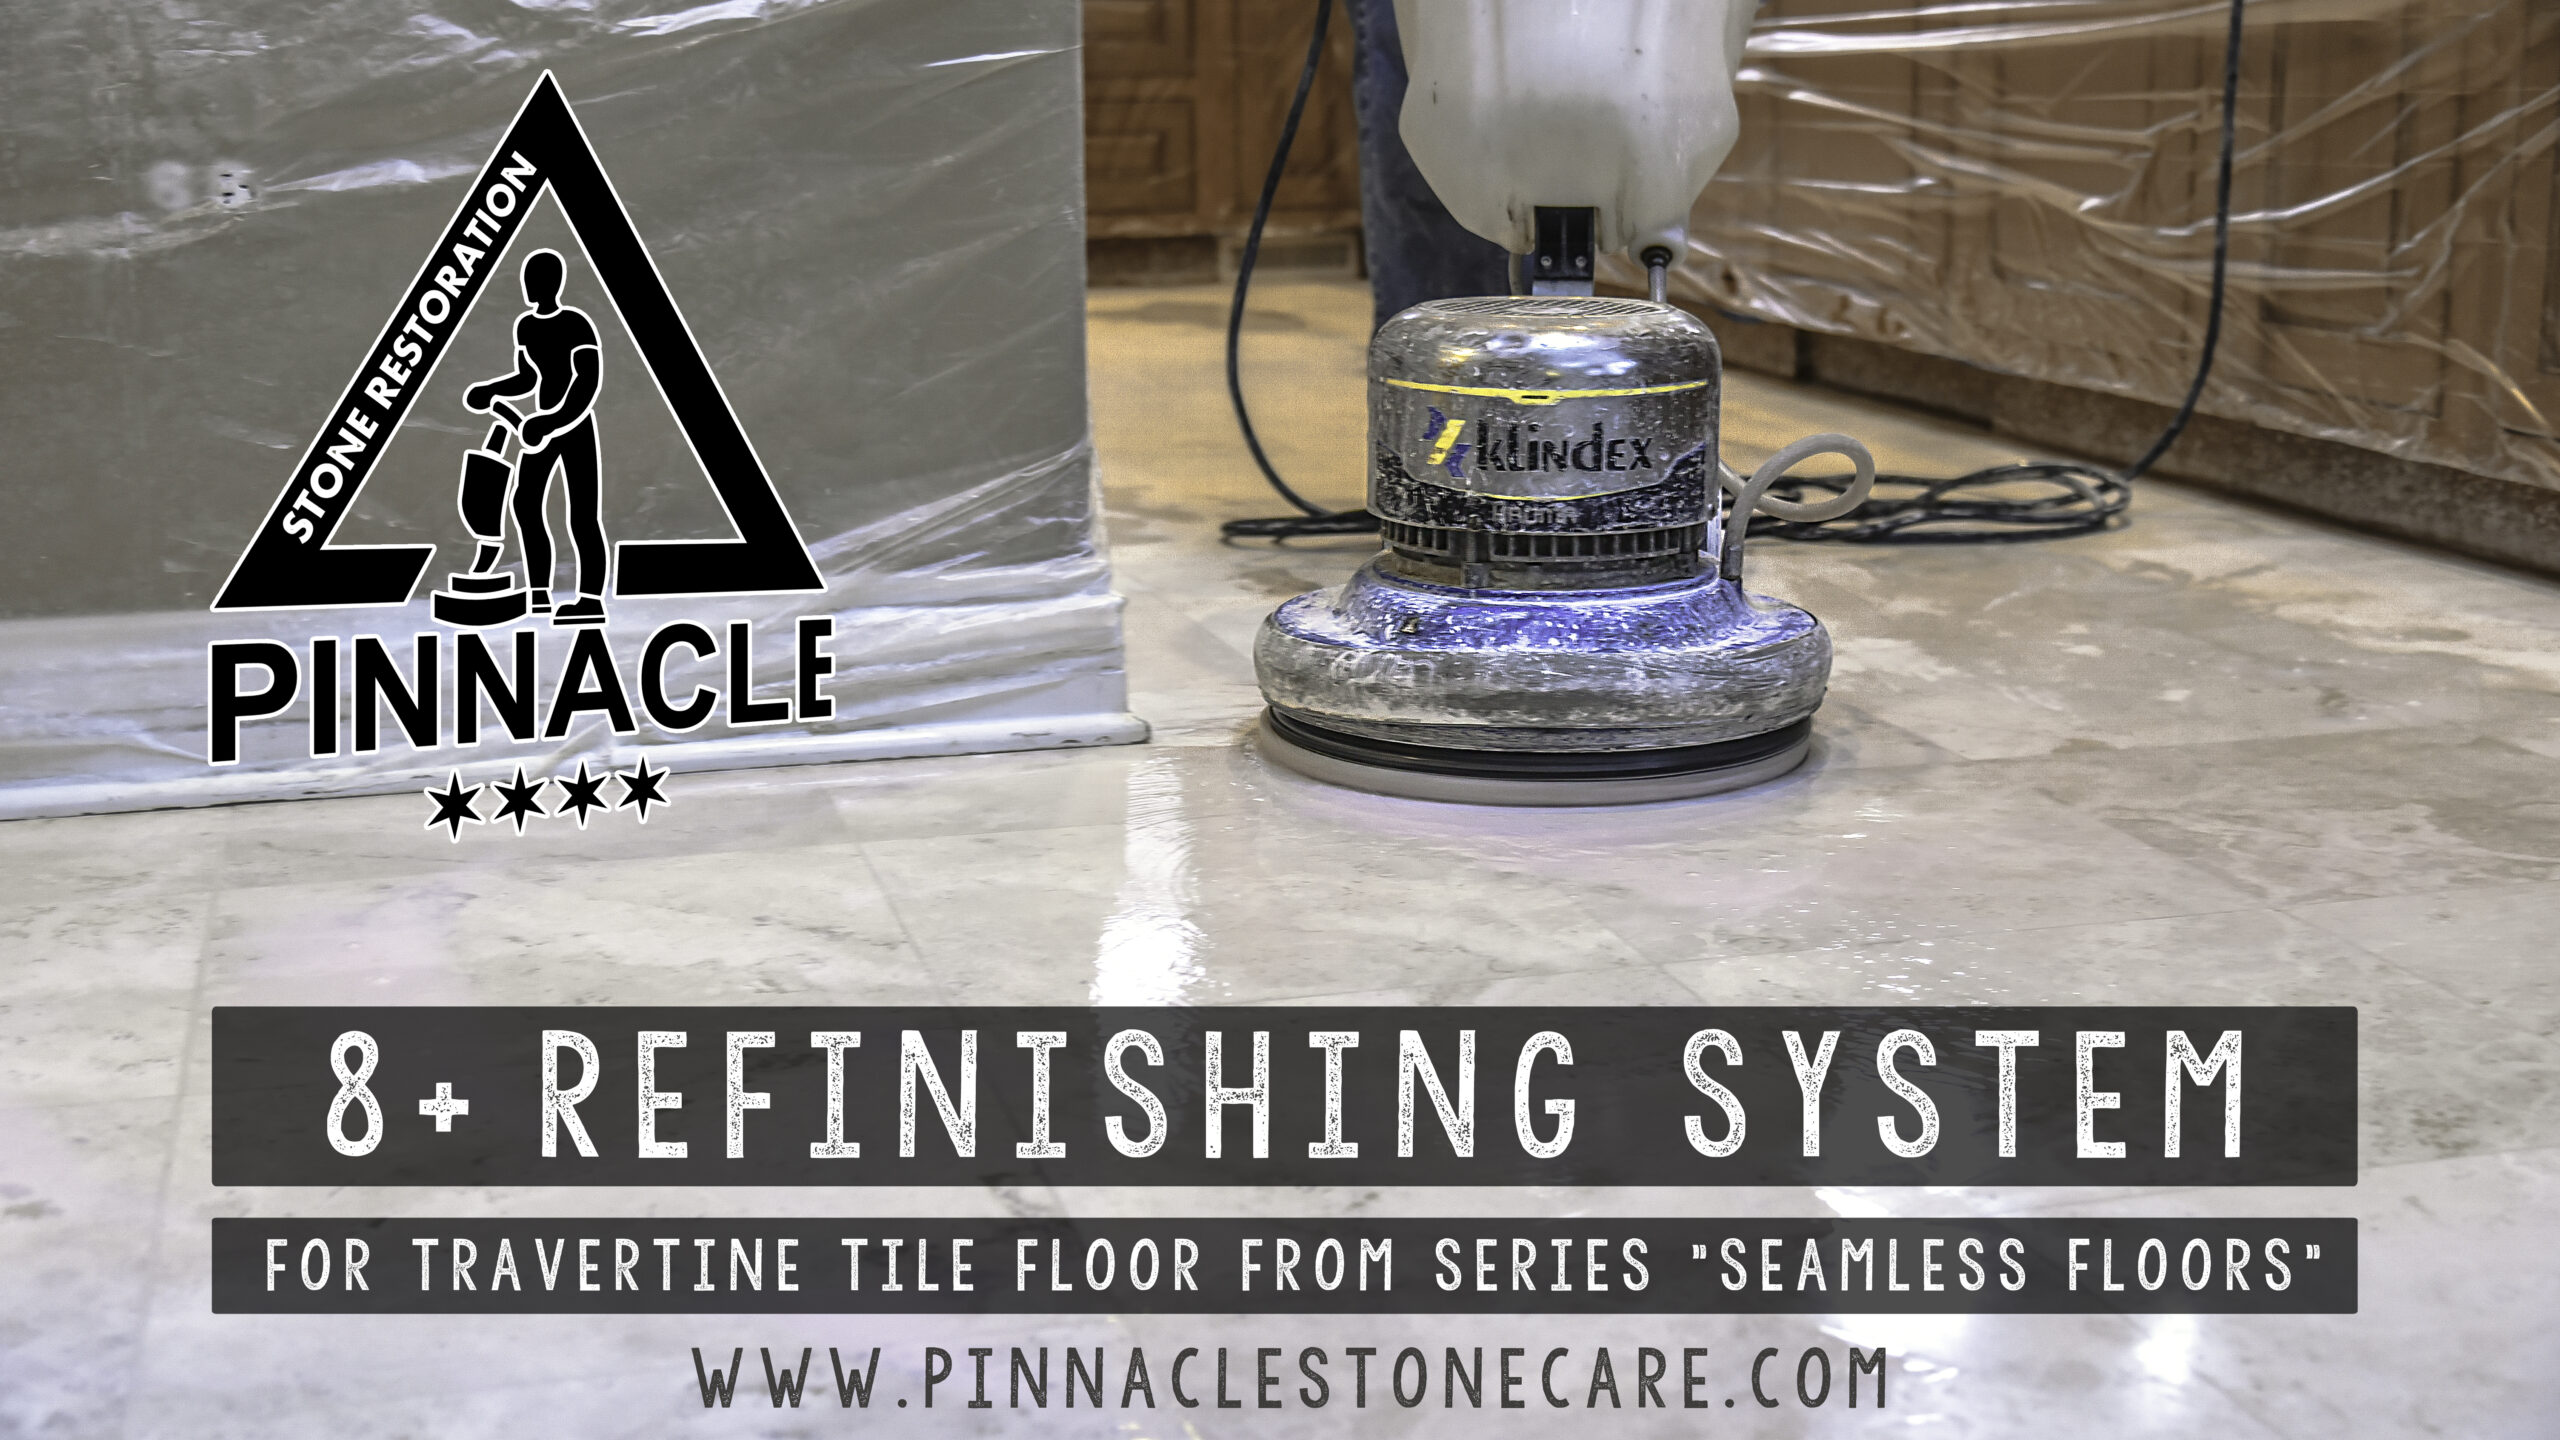 "8+Refinishing System for travertine tile floor from series ""Seamless Floors"" (Grout removal, lippage removal/seam leveling, grinding, honing, sealing)"